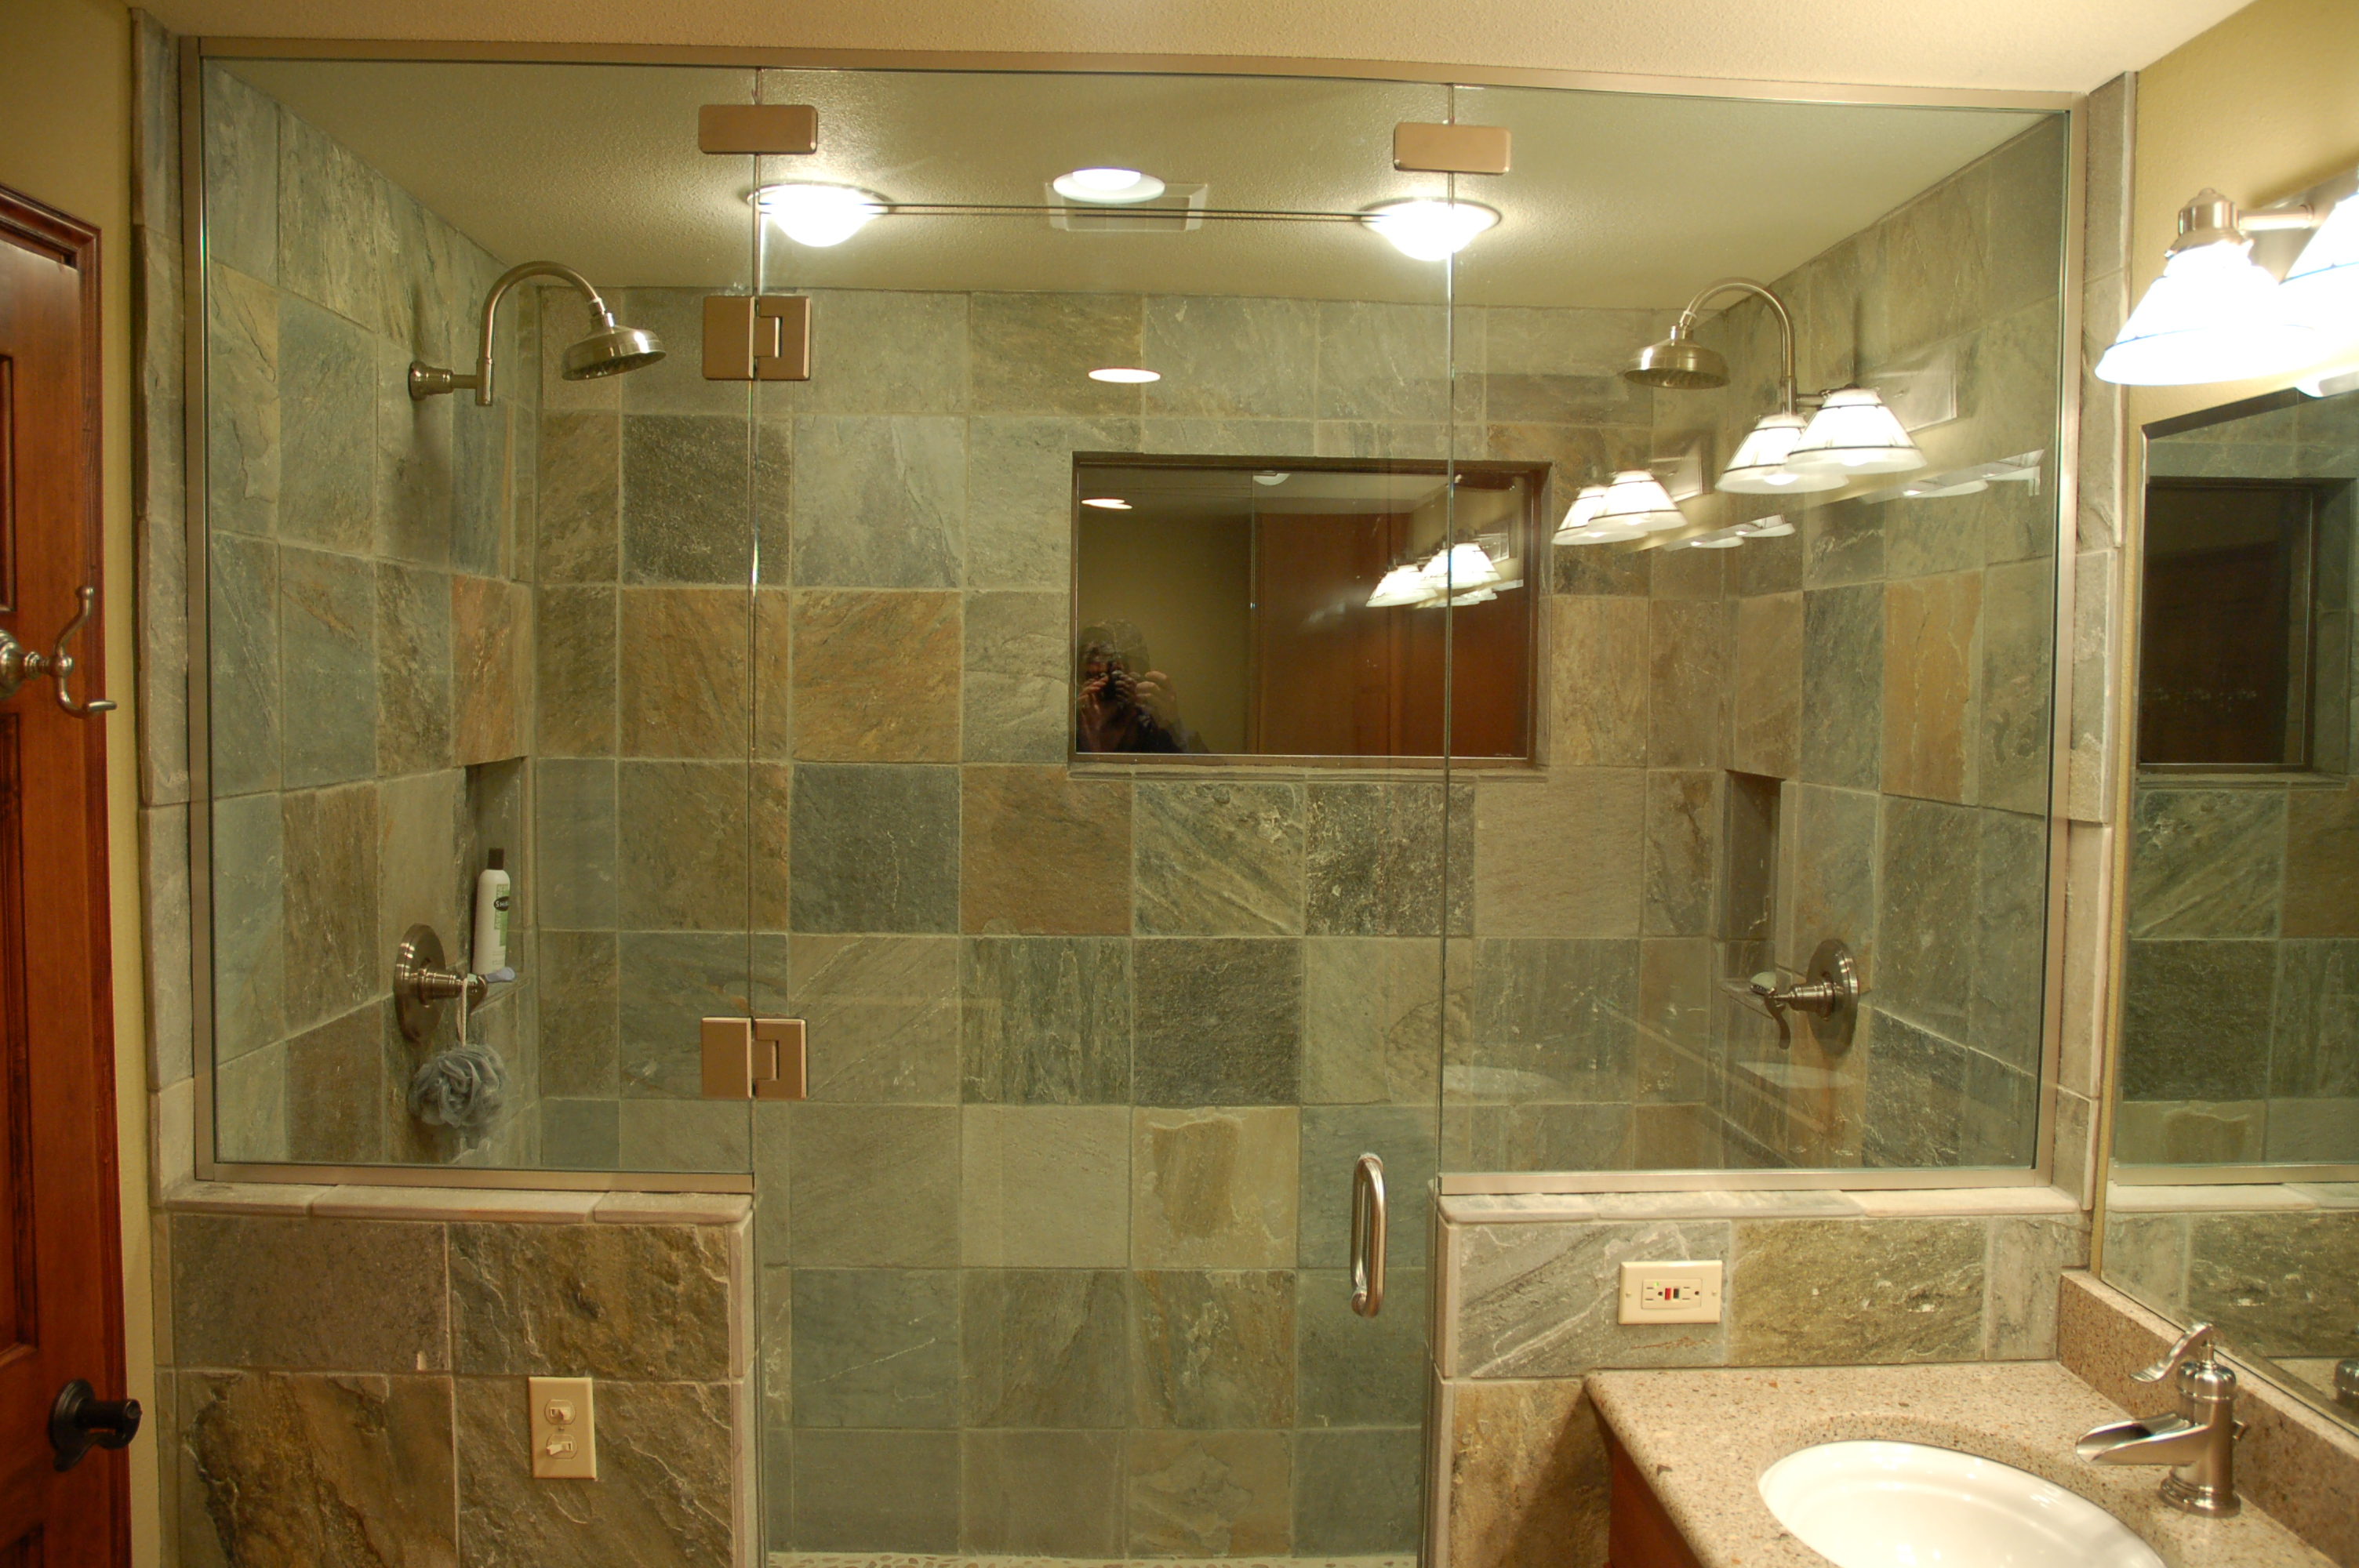 Incredible Bathroom Shower Tile Ideas Slate 3008 x 2000 · 2577 kB · jpeg